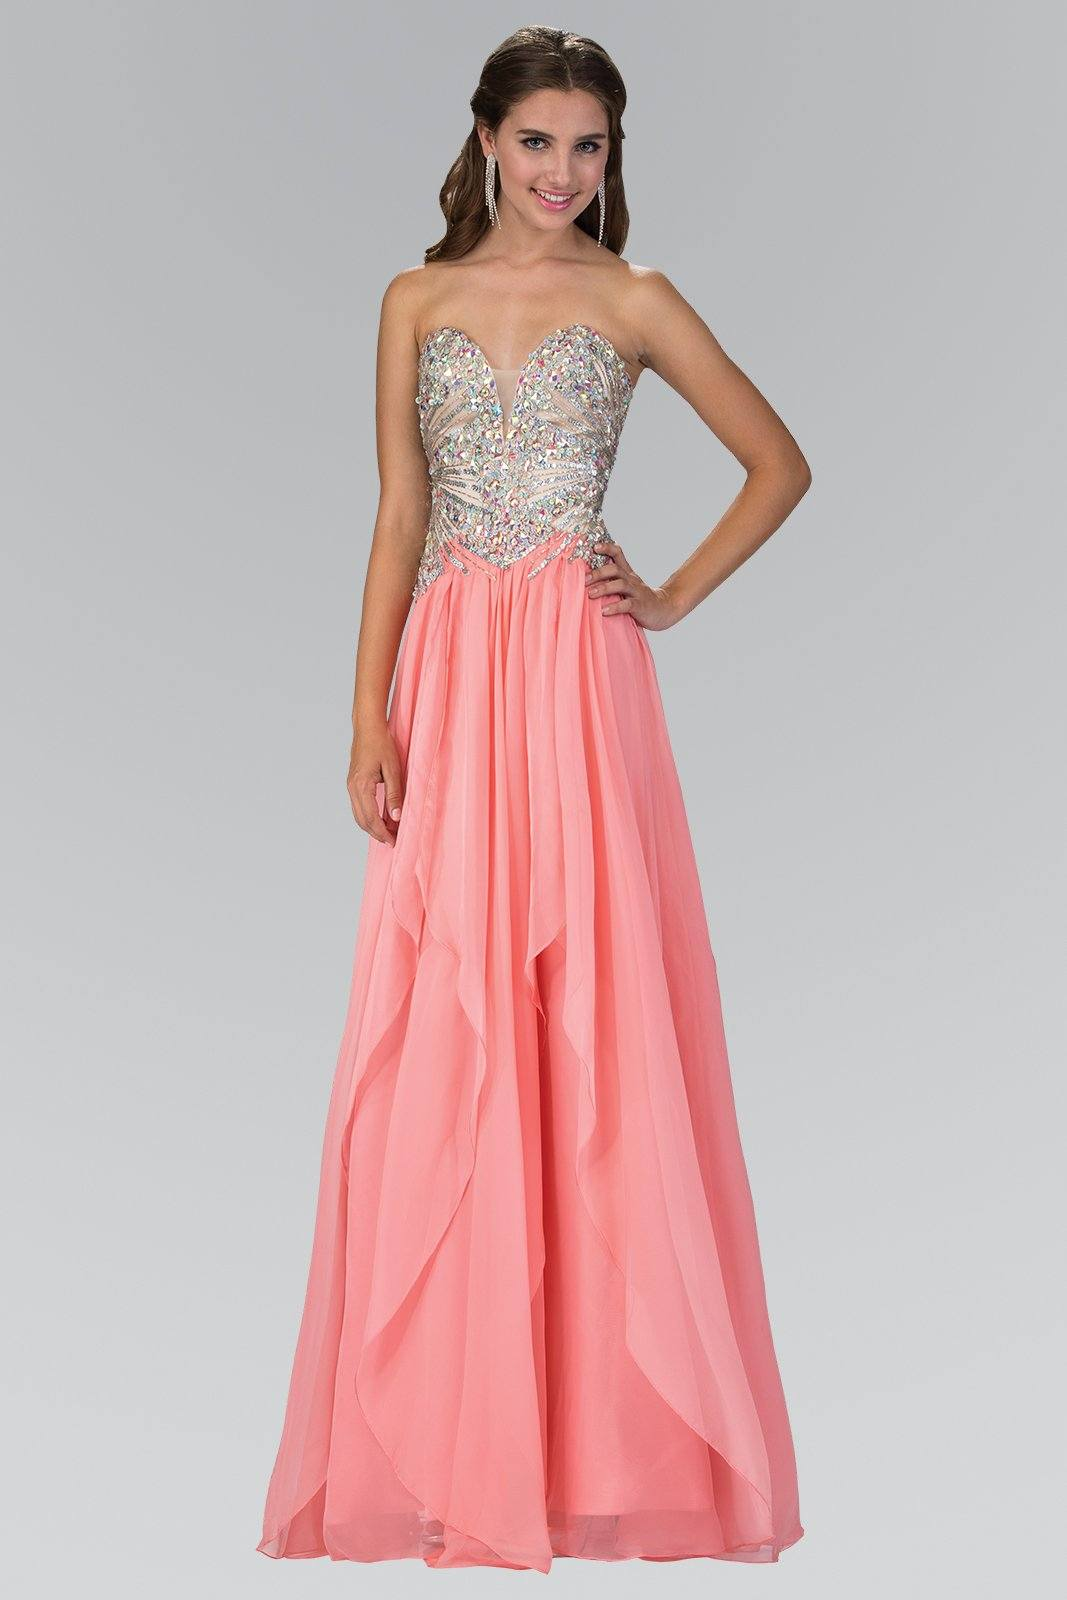 Strapless beaded prom dress gls 2092 – Simply Fab Dress